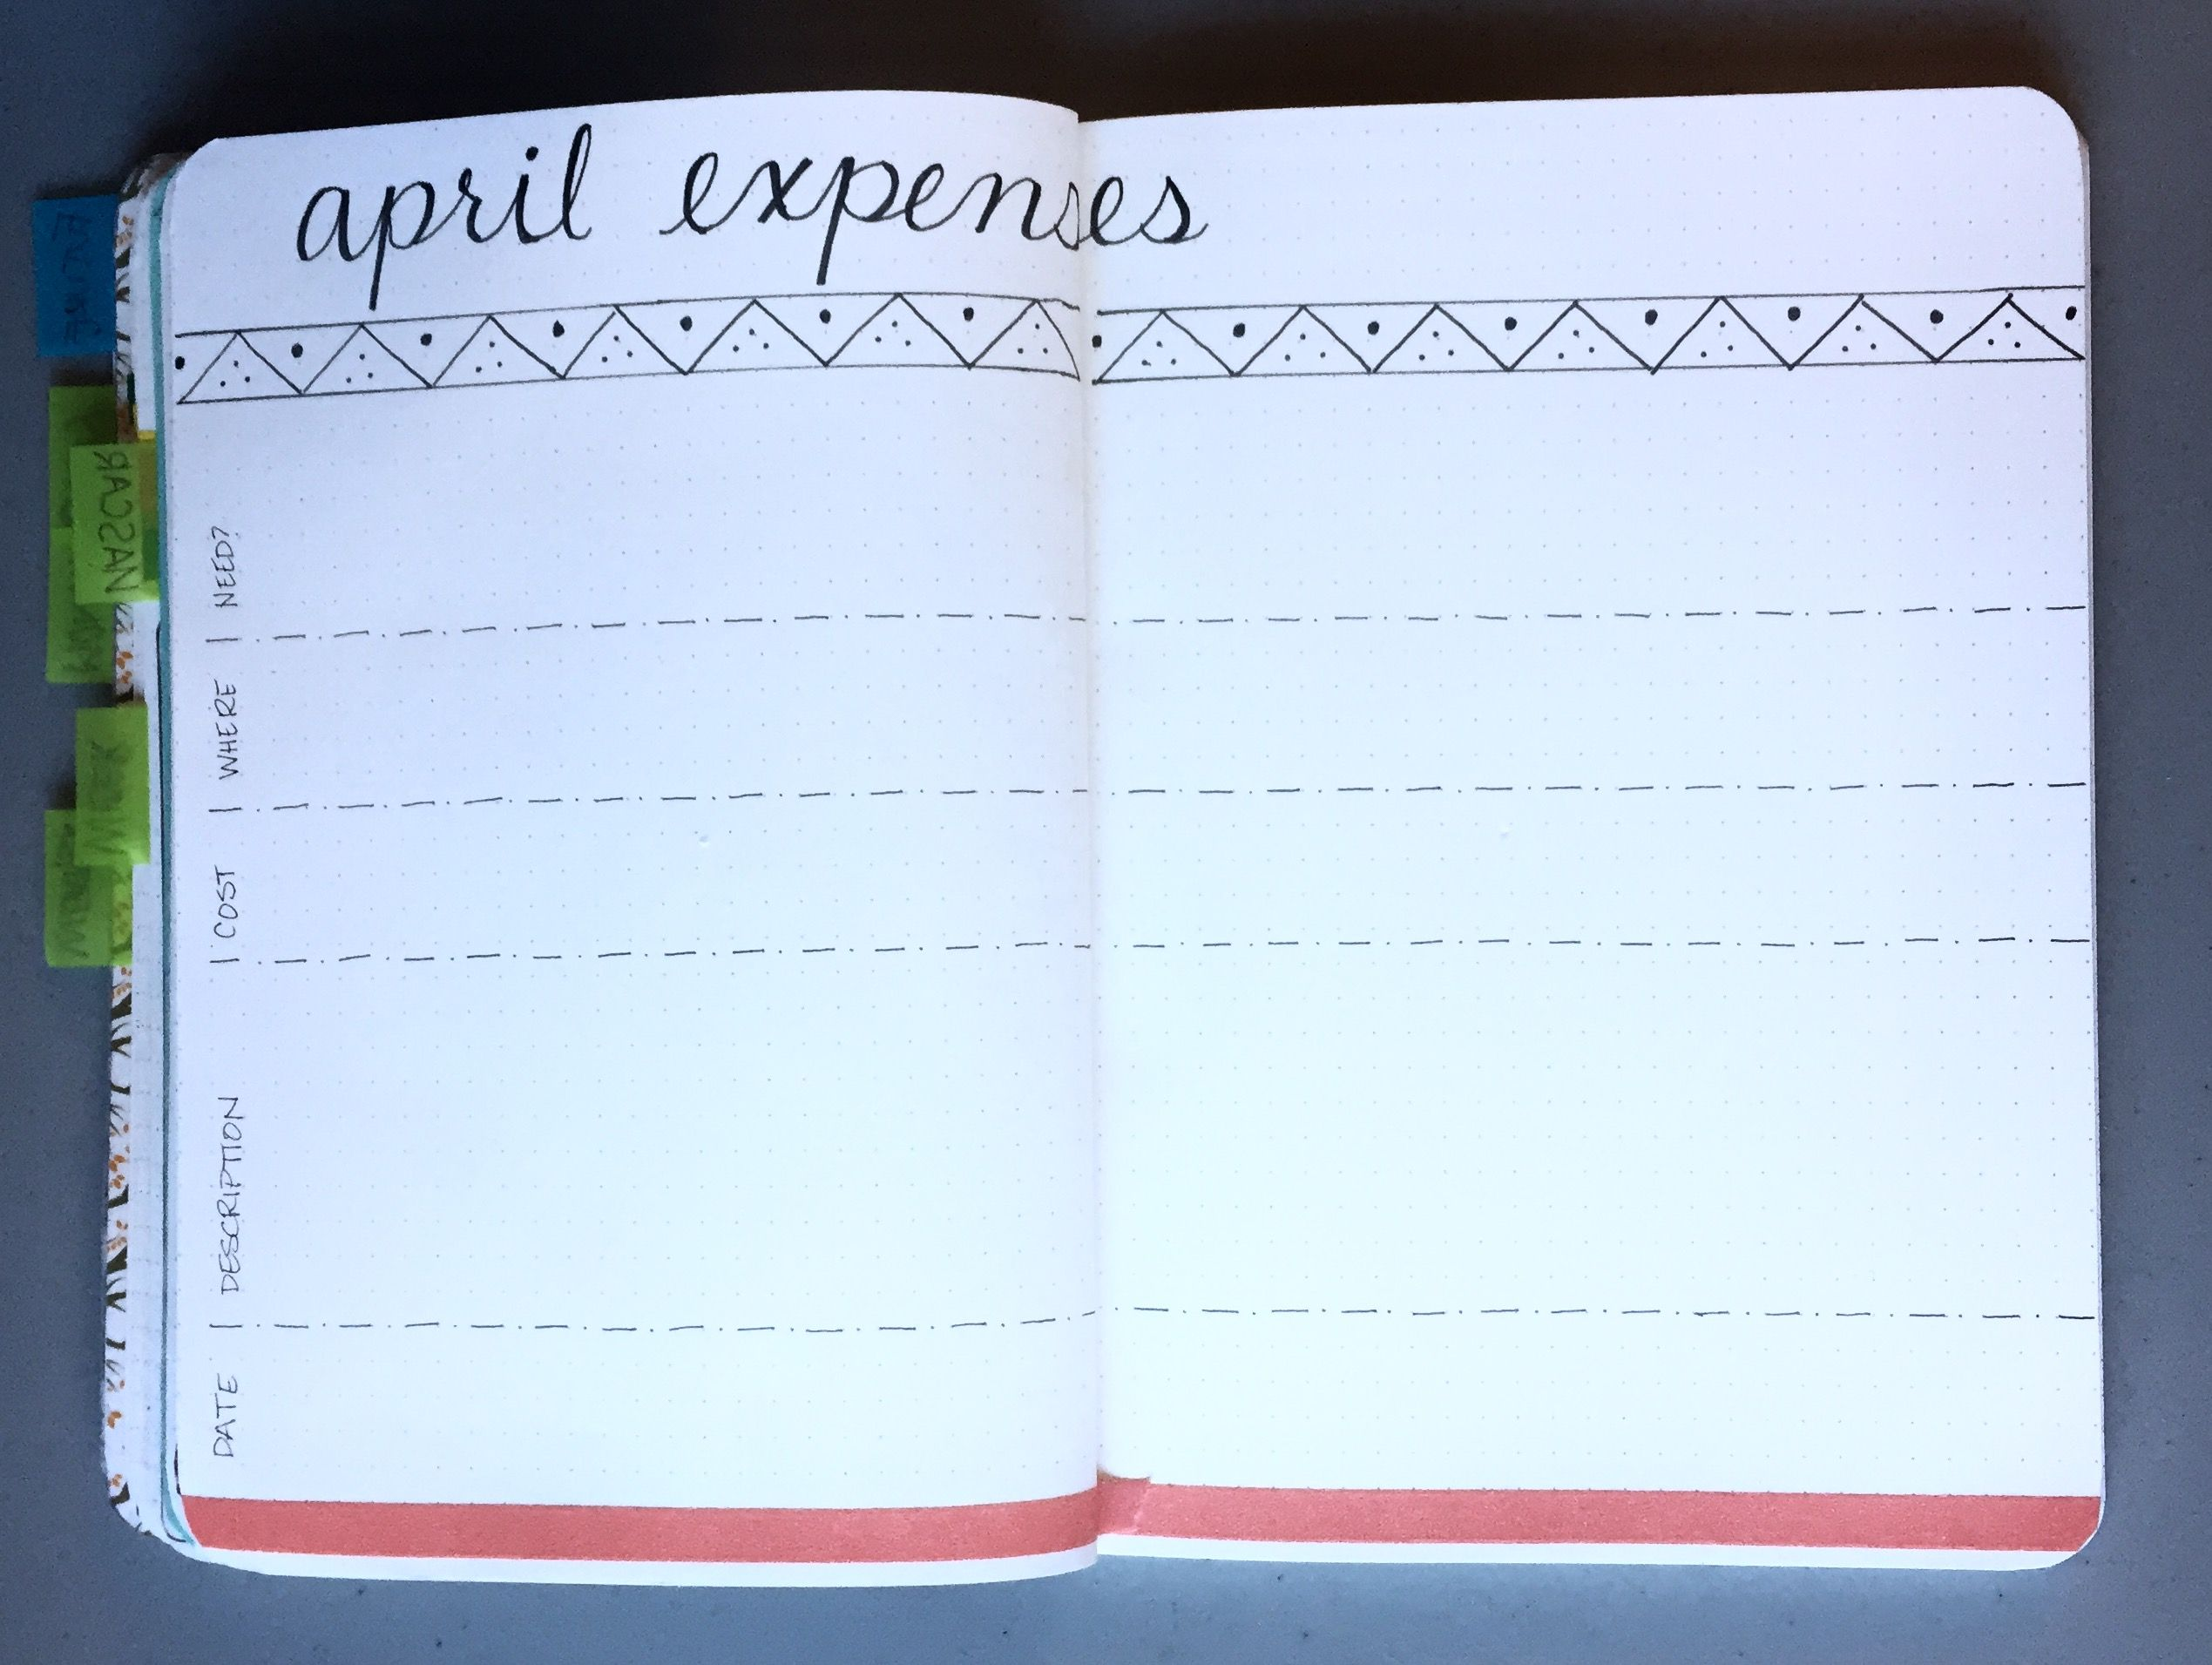 april expenses i want to start tracking my cash flow bullet